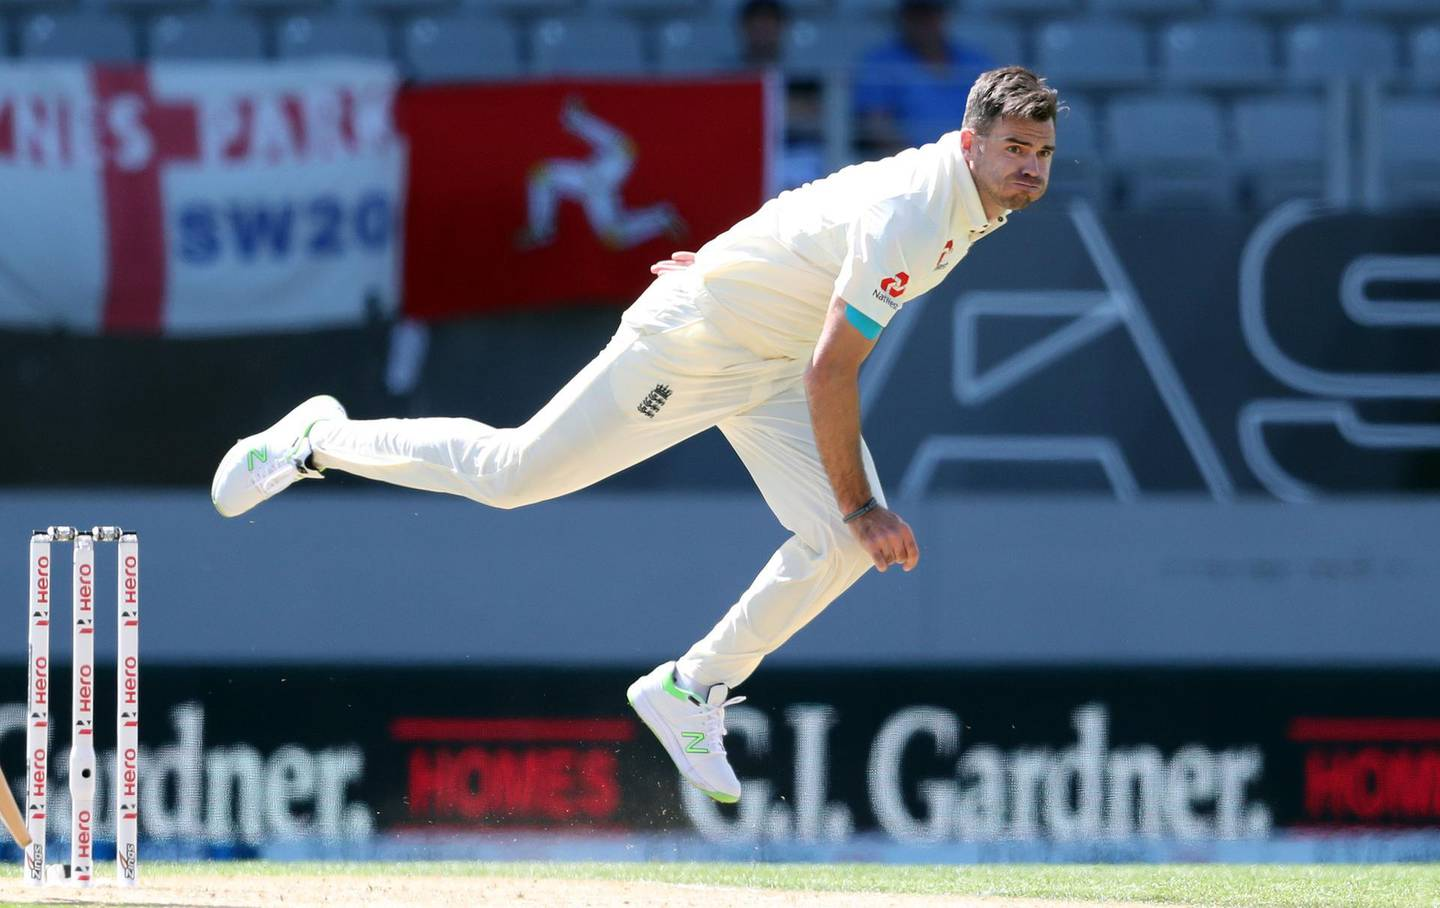 (FILES) In this file photo taken on March 25, 2018 England's James Anderson bowls on the fourth day of the day-night Test cricket match between New Zealand and England at Eden Park in Auckland. James Anderson is to have a six-week break from all cricket in a bid to ensure England's all-time leading Test wicket-taker is fully fit for an upcoming series with India, it was announced on June 10, 2018. / AFP / MICHAEL BRADLEY